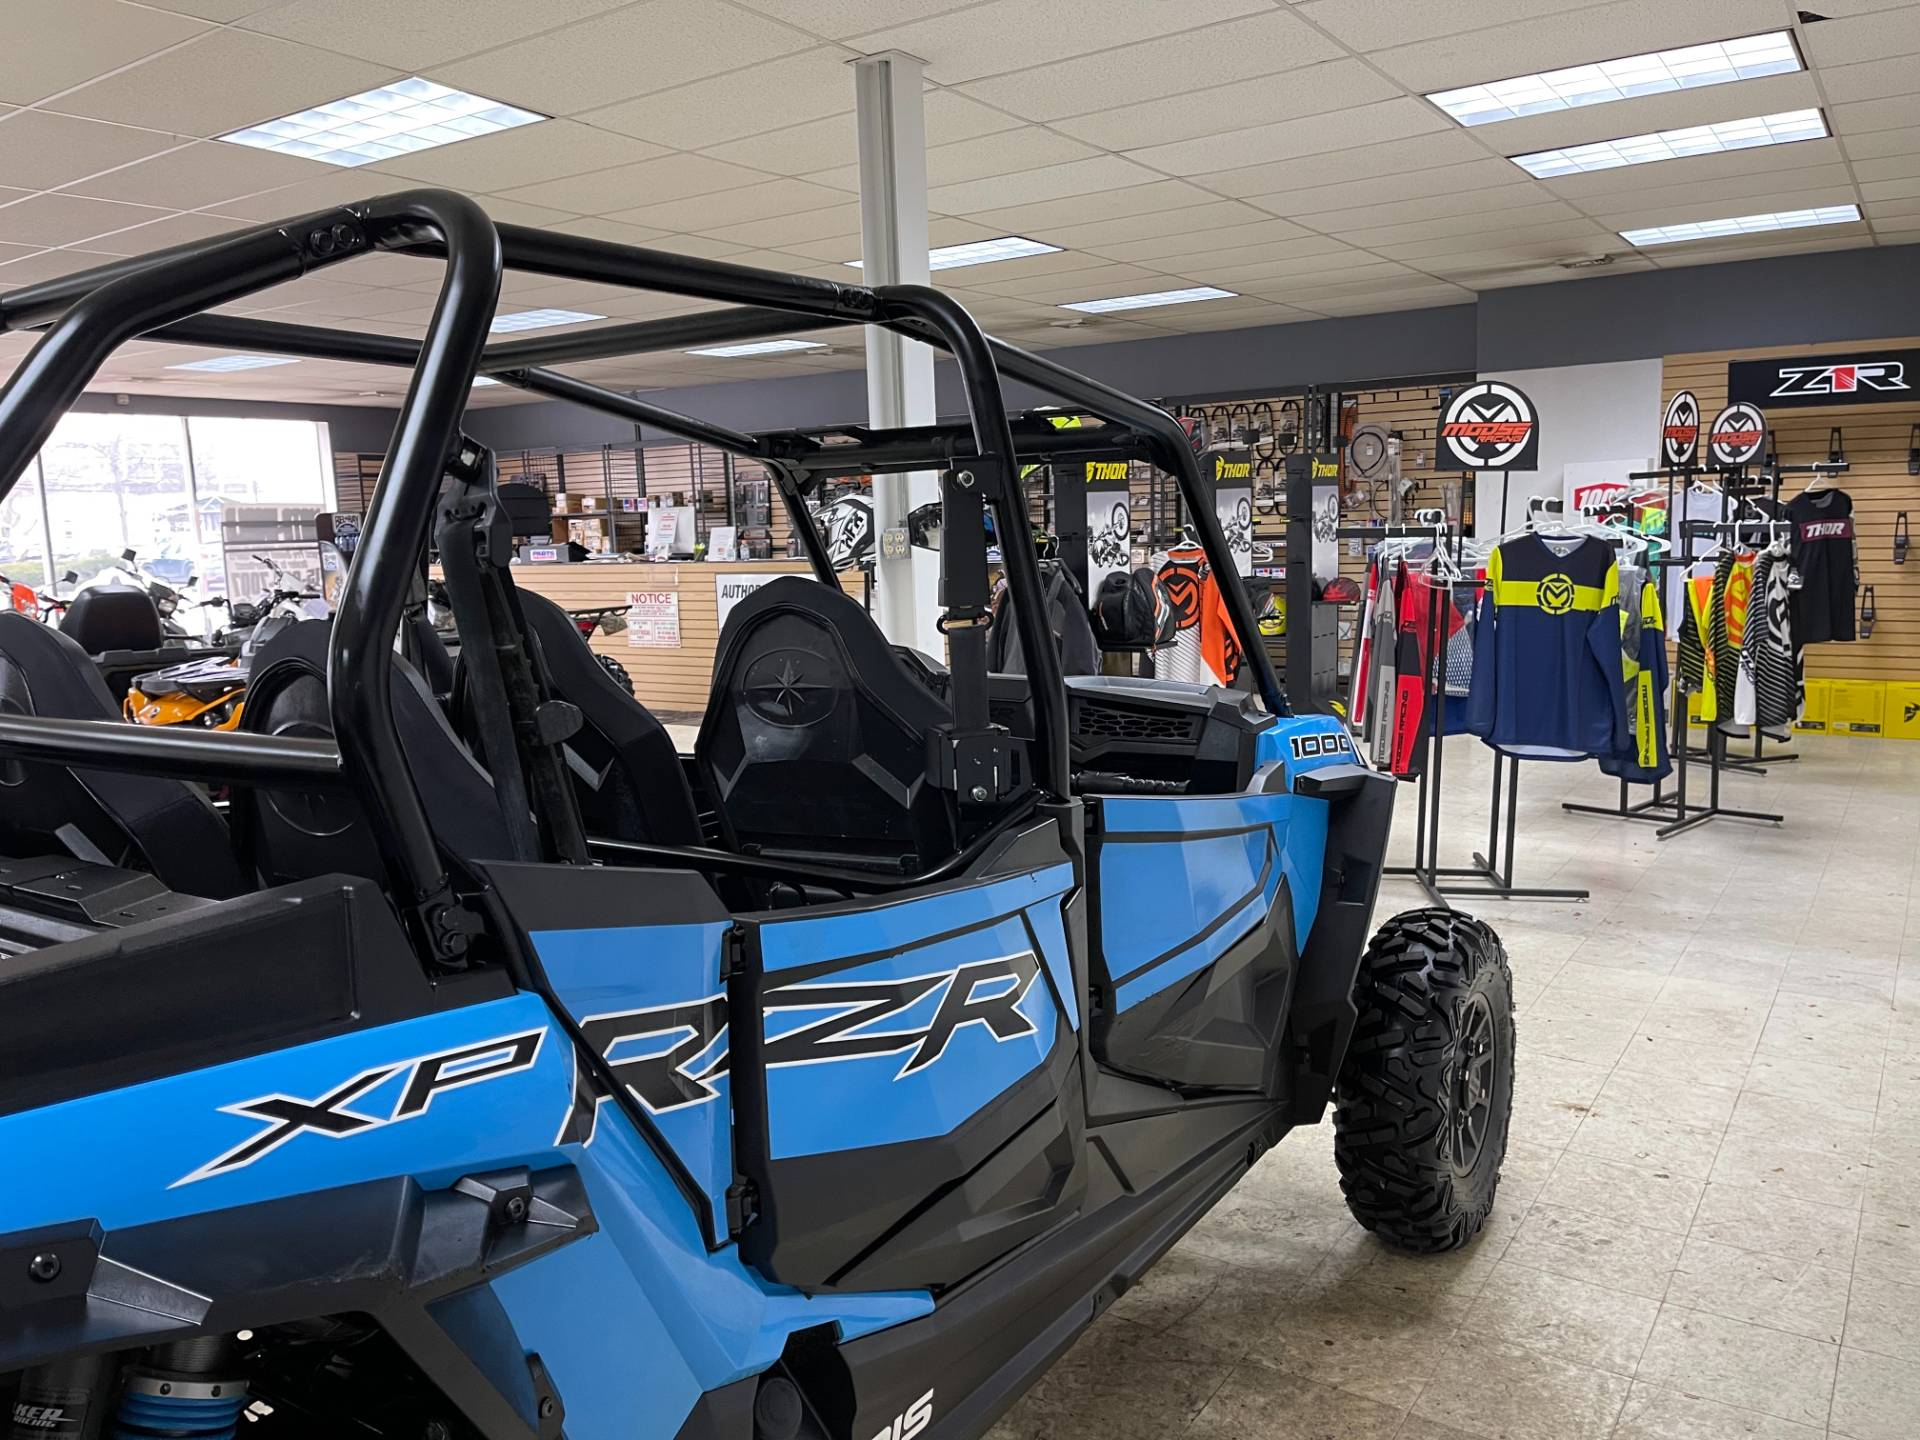 2020 Polaris RZR XP 4 1000 in Herkimer, New York - Photo 20